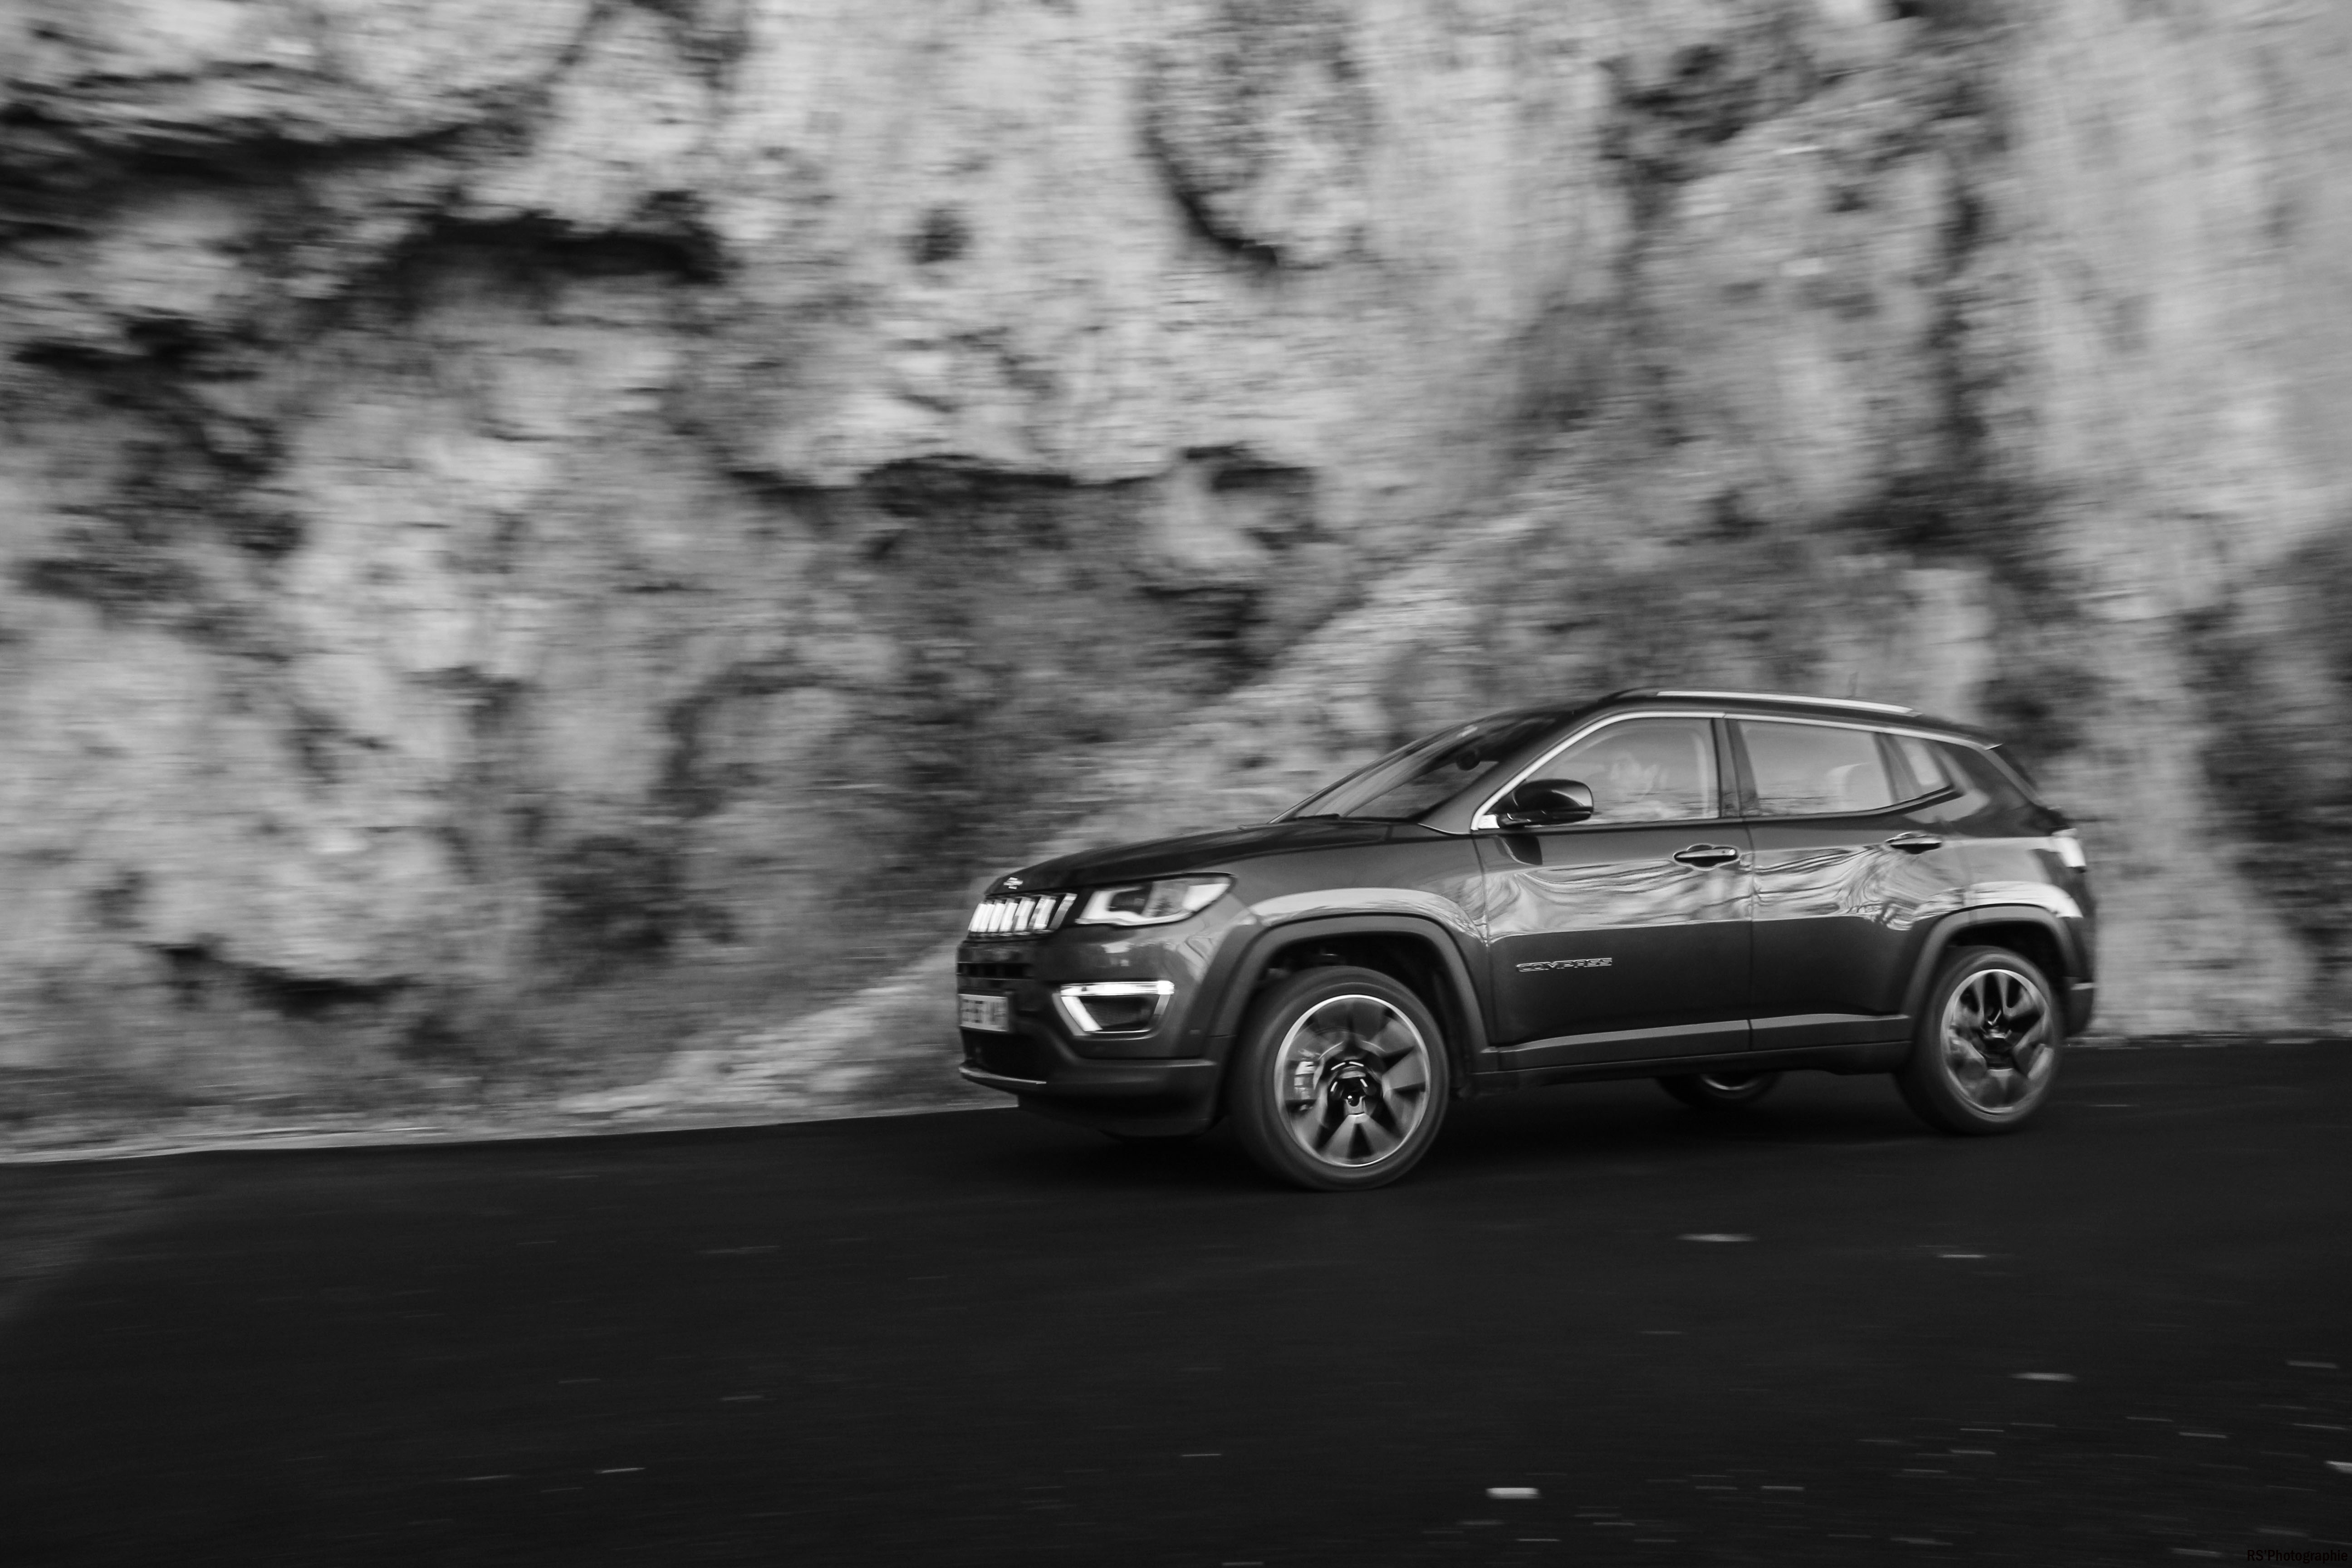 jeepcompass47-jeep-compass-avant-front-Arnaud Demasier-RSPhotographie